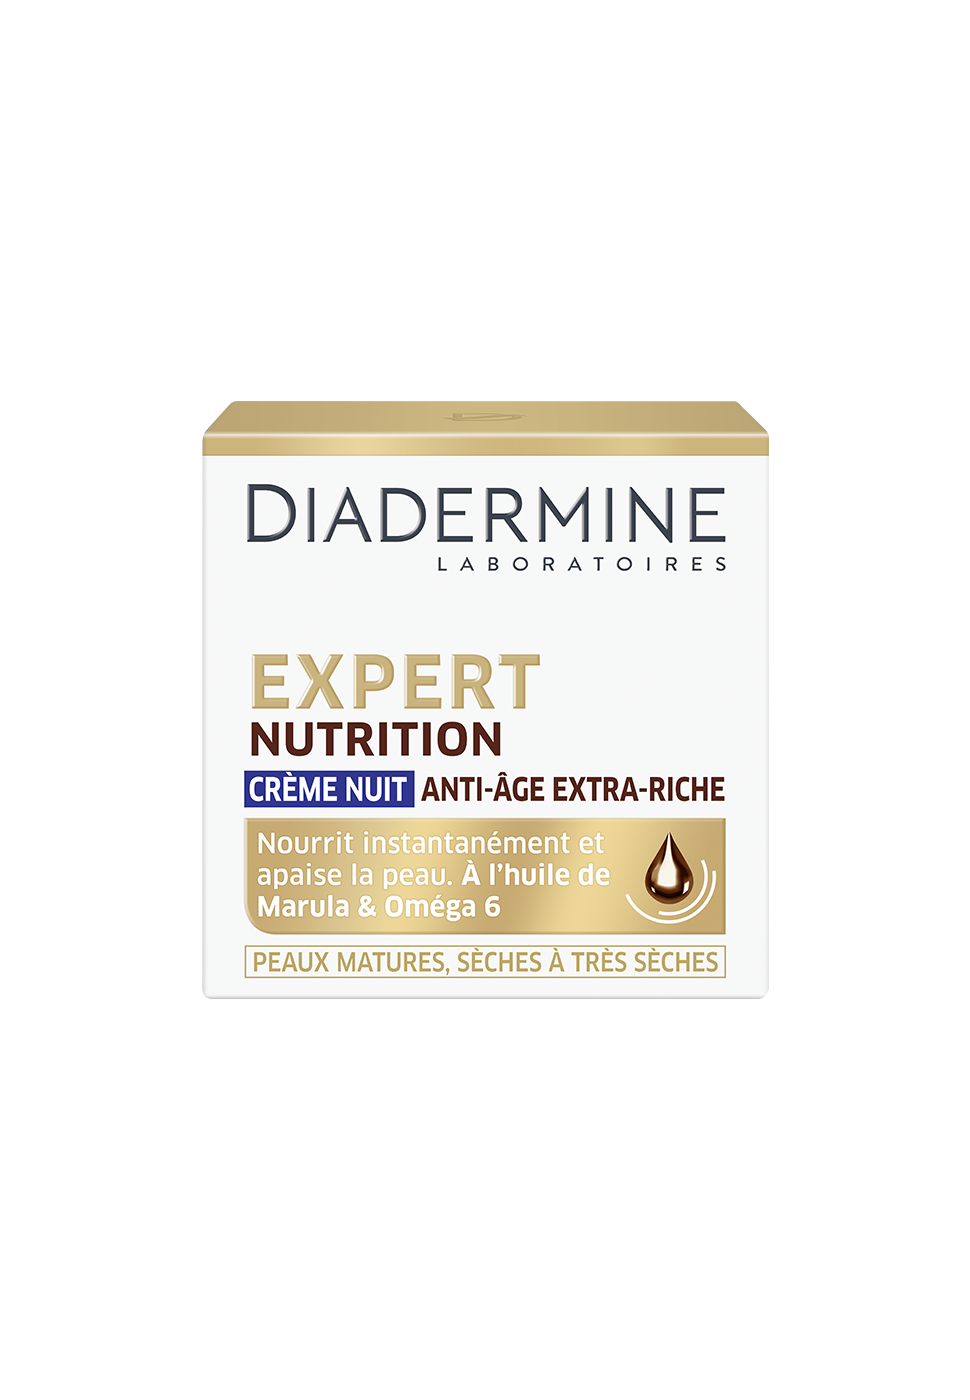 diadermine_expert_nutrition_creme_nuit